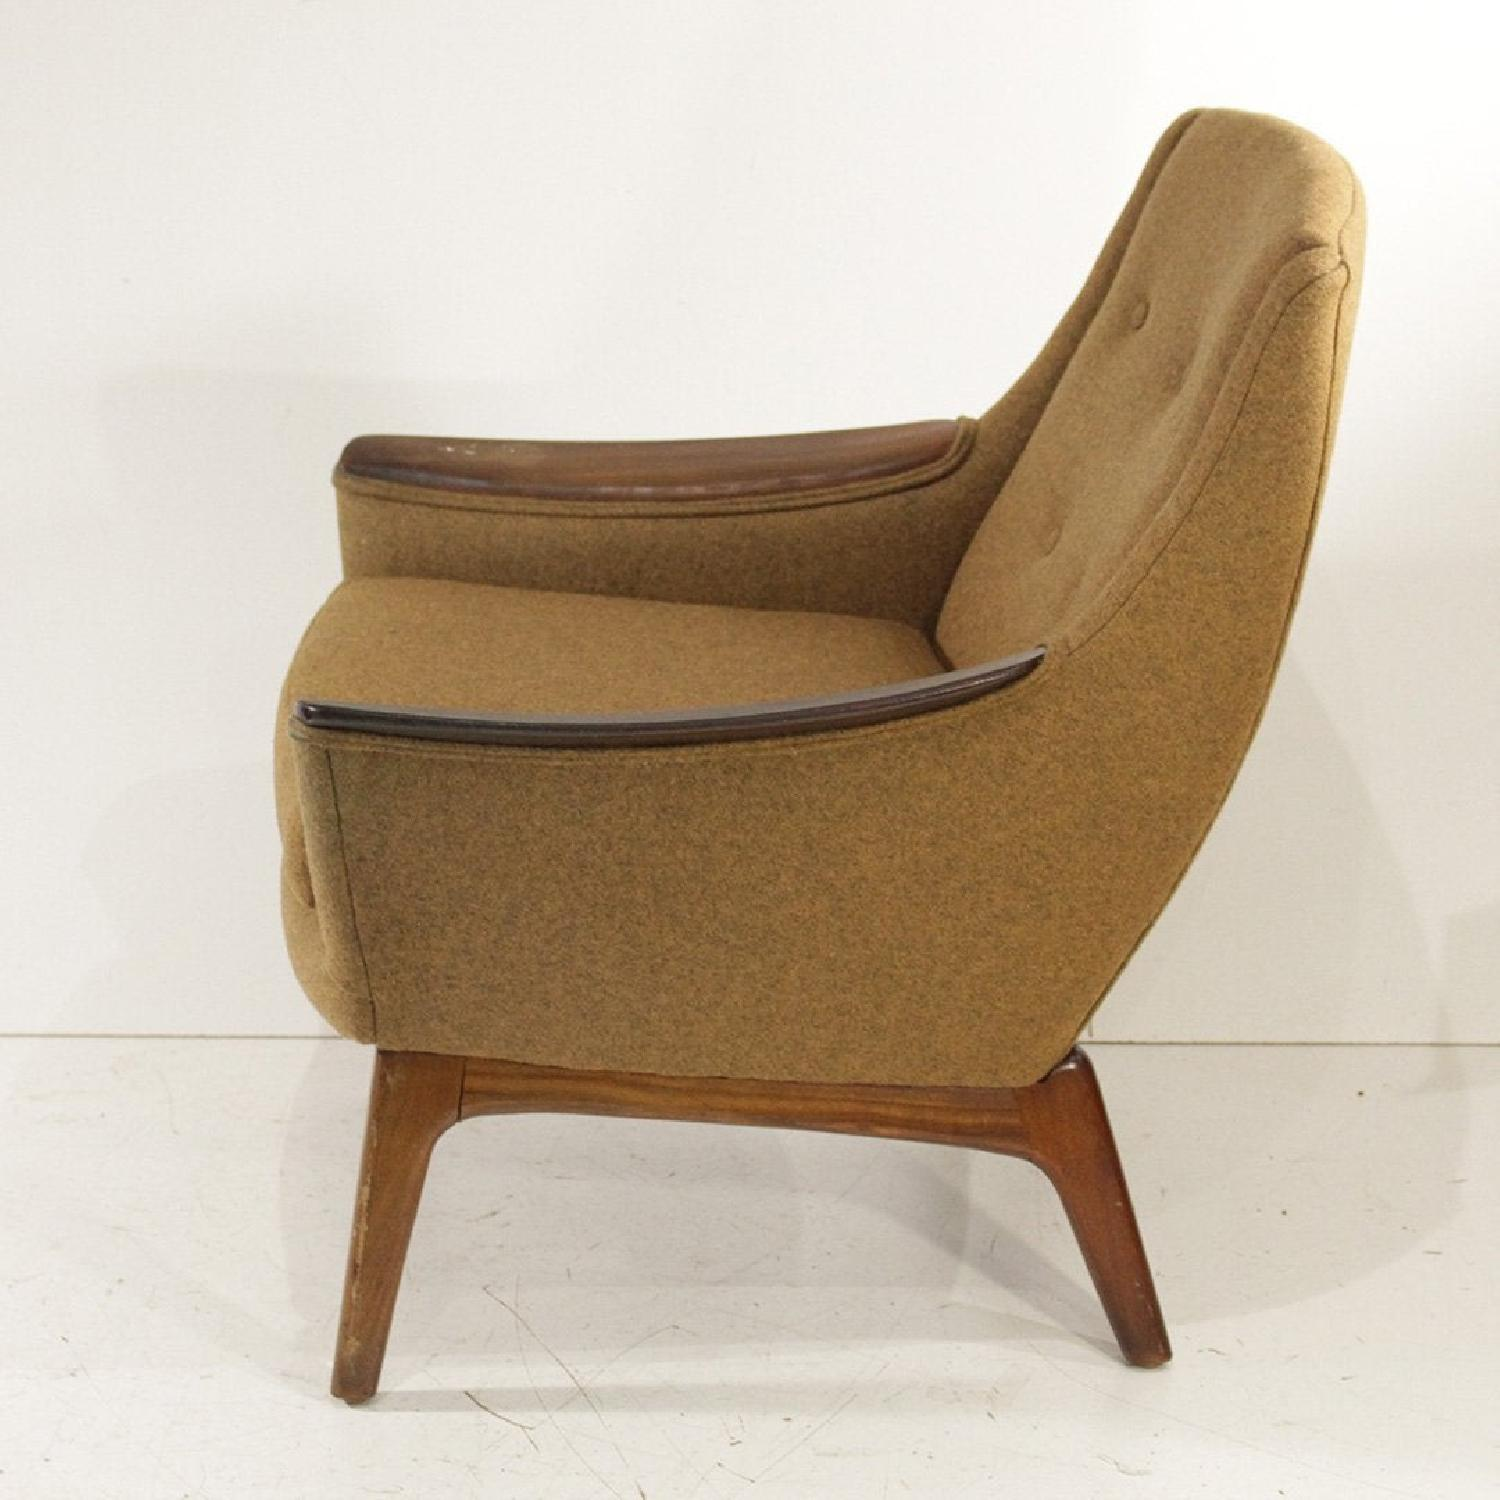 1960s Adrian Pearsall Walnut & Tweed Lounge Chair - image-2